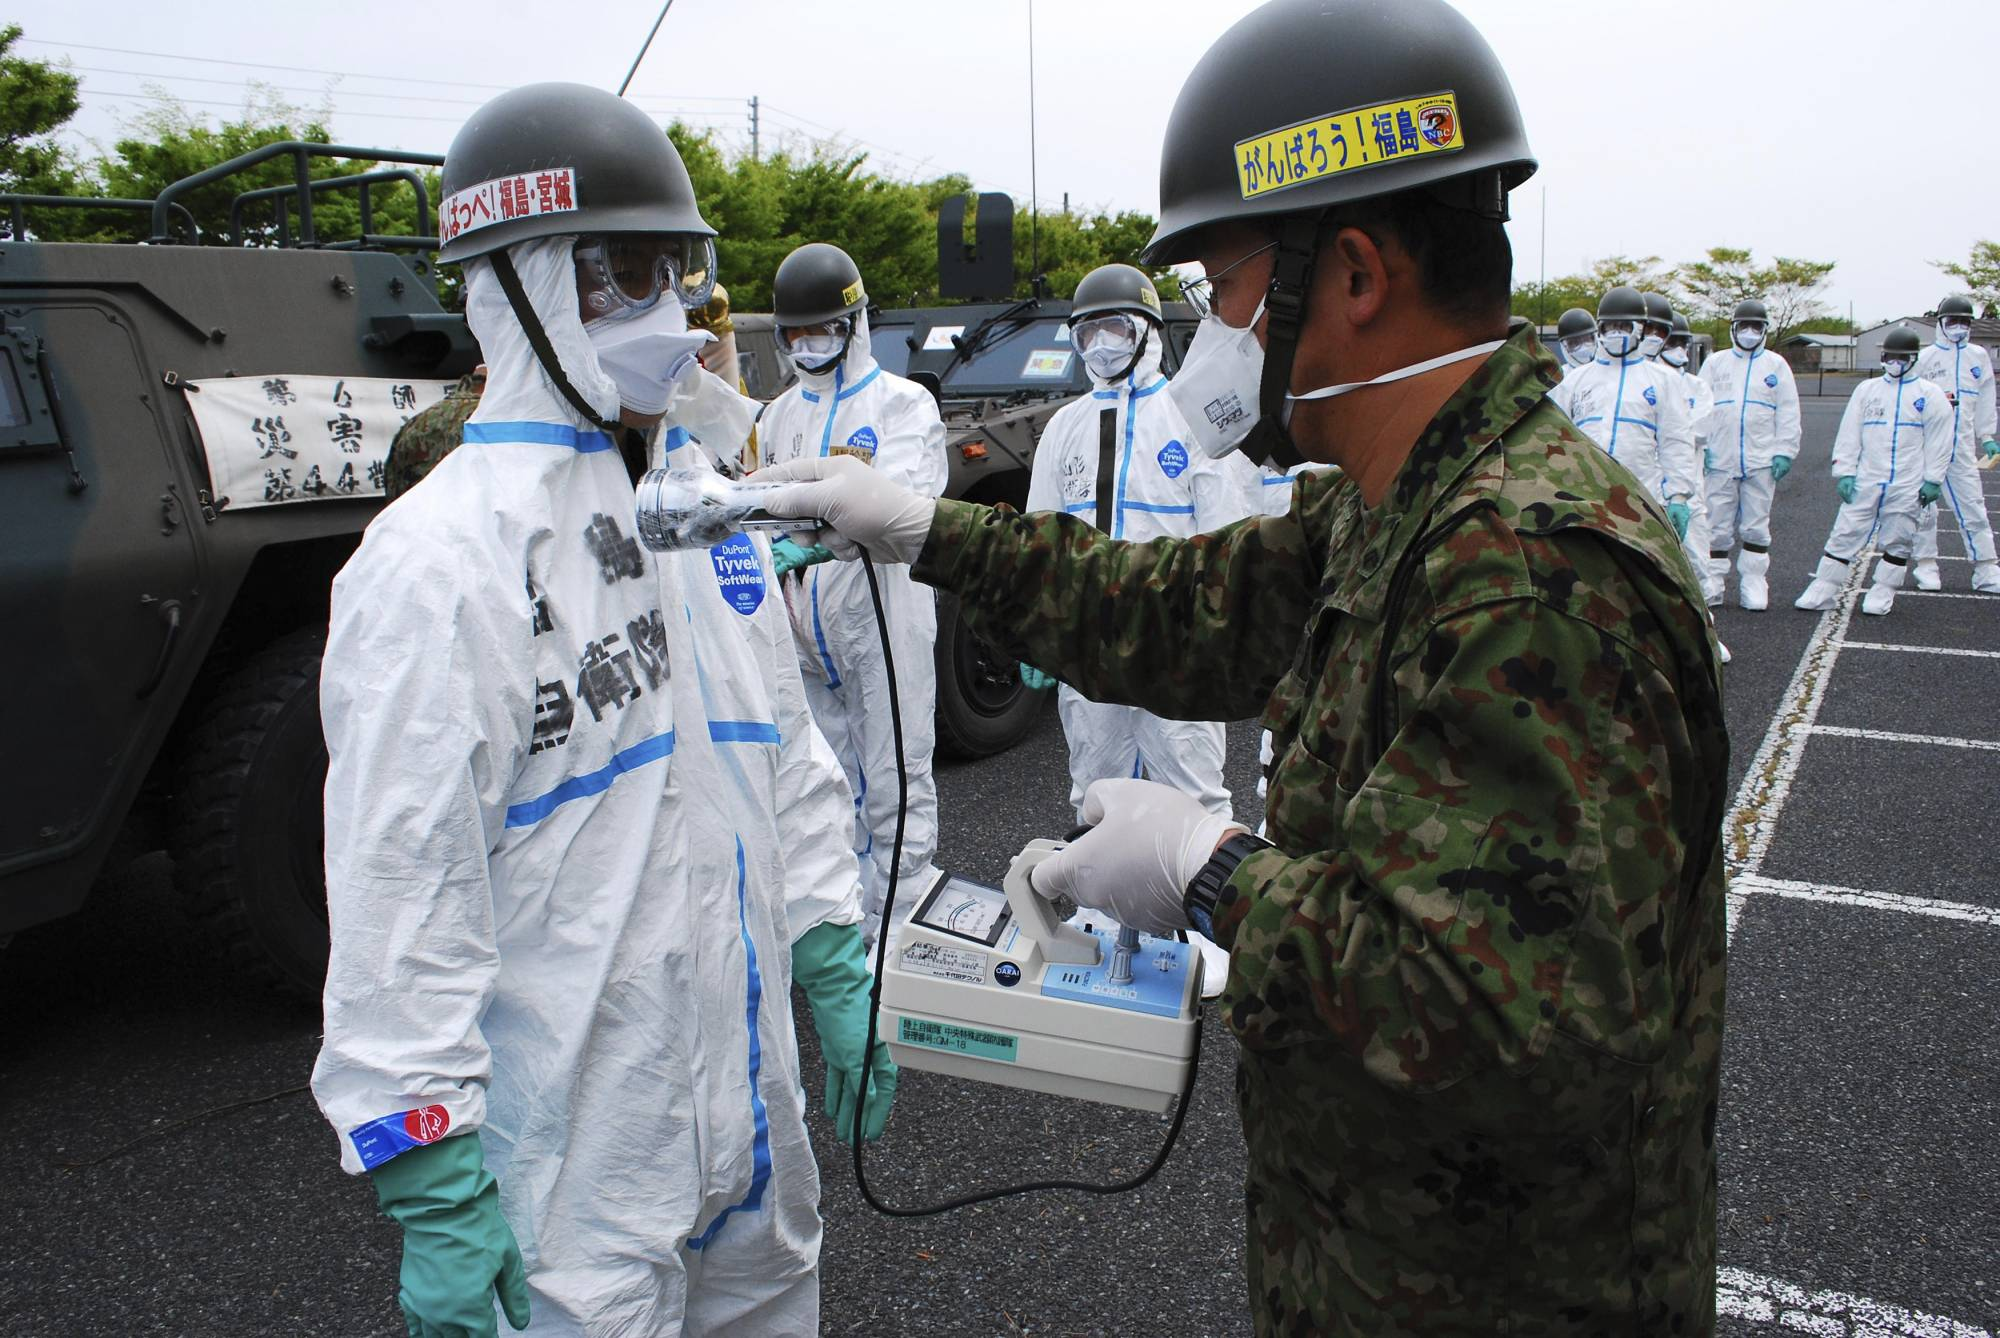 Self-Defense Force personnel are screened for radiation in Minamisoma, Fukushima Prefecture, after searching for bodies in the area soon after the March 11, 2011, earthquake and tsunami. It is estimated that the military was responsible for 70% of the persons rescued after the event.     | GSDF / VIA   REUTERS